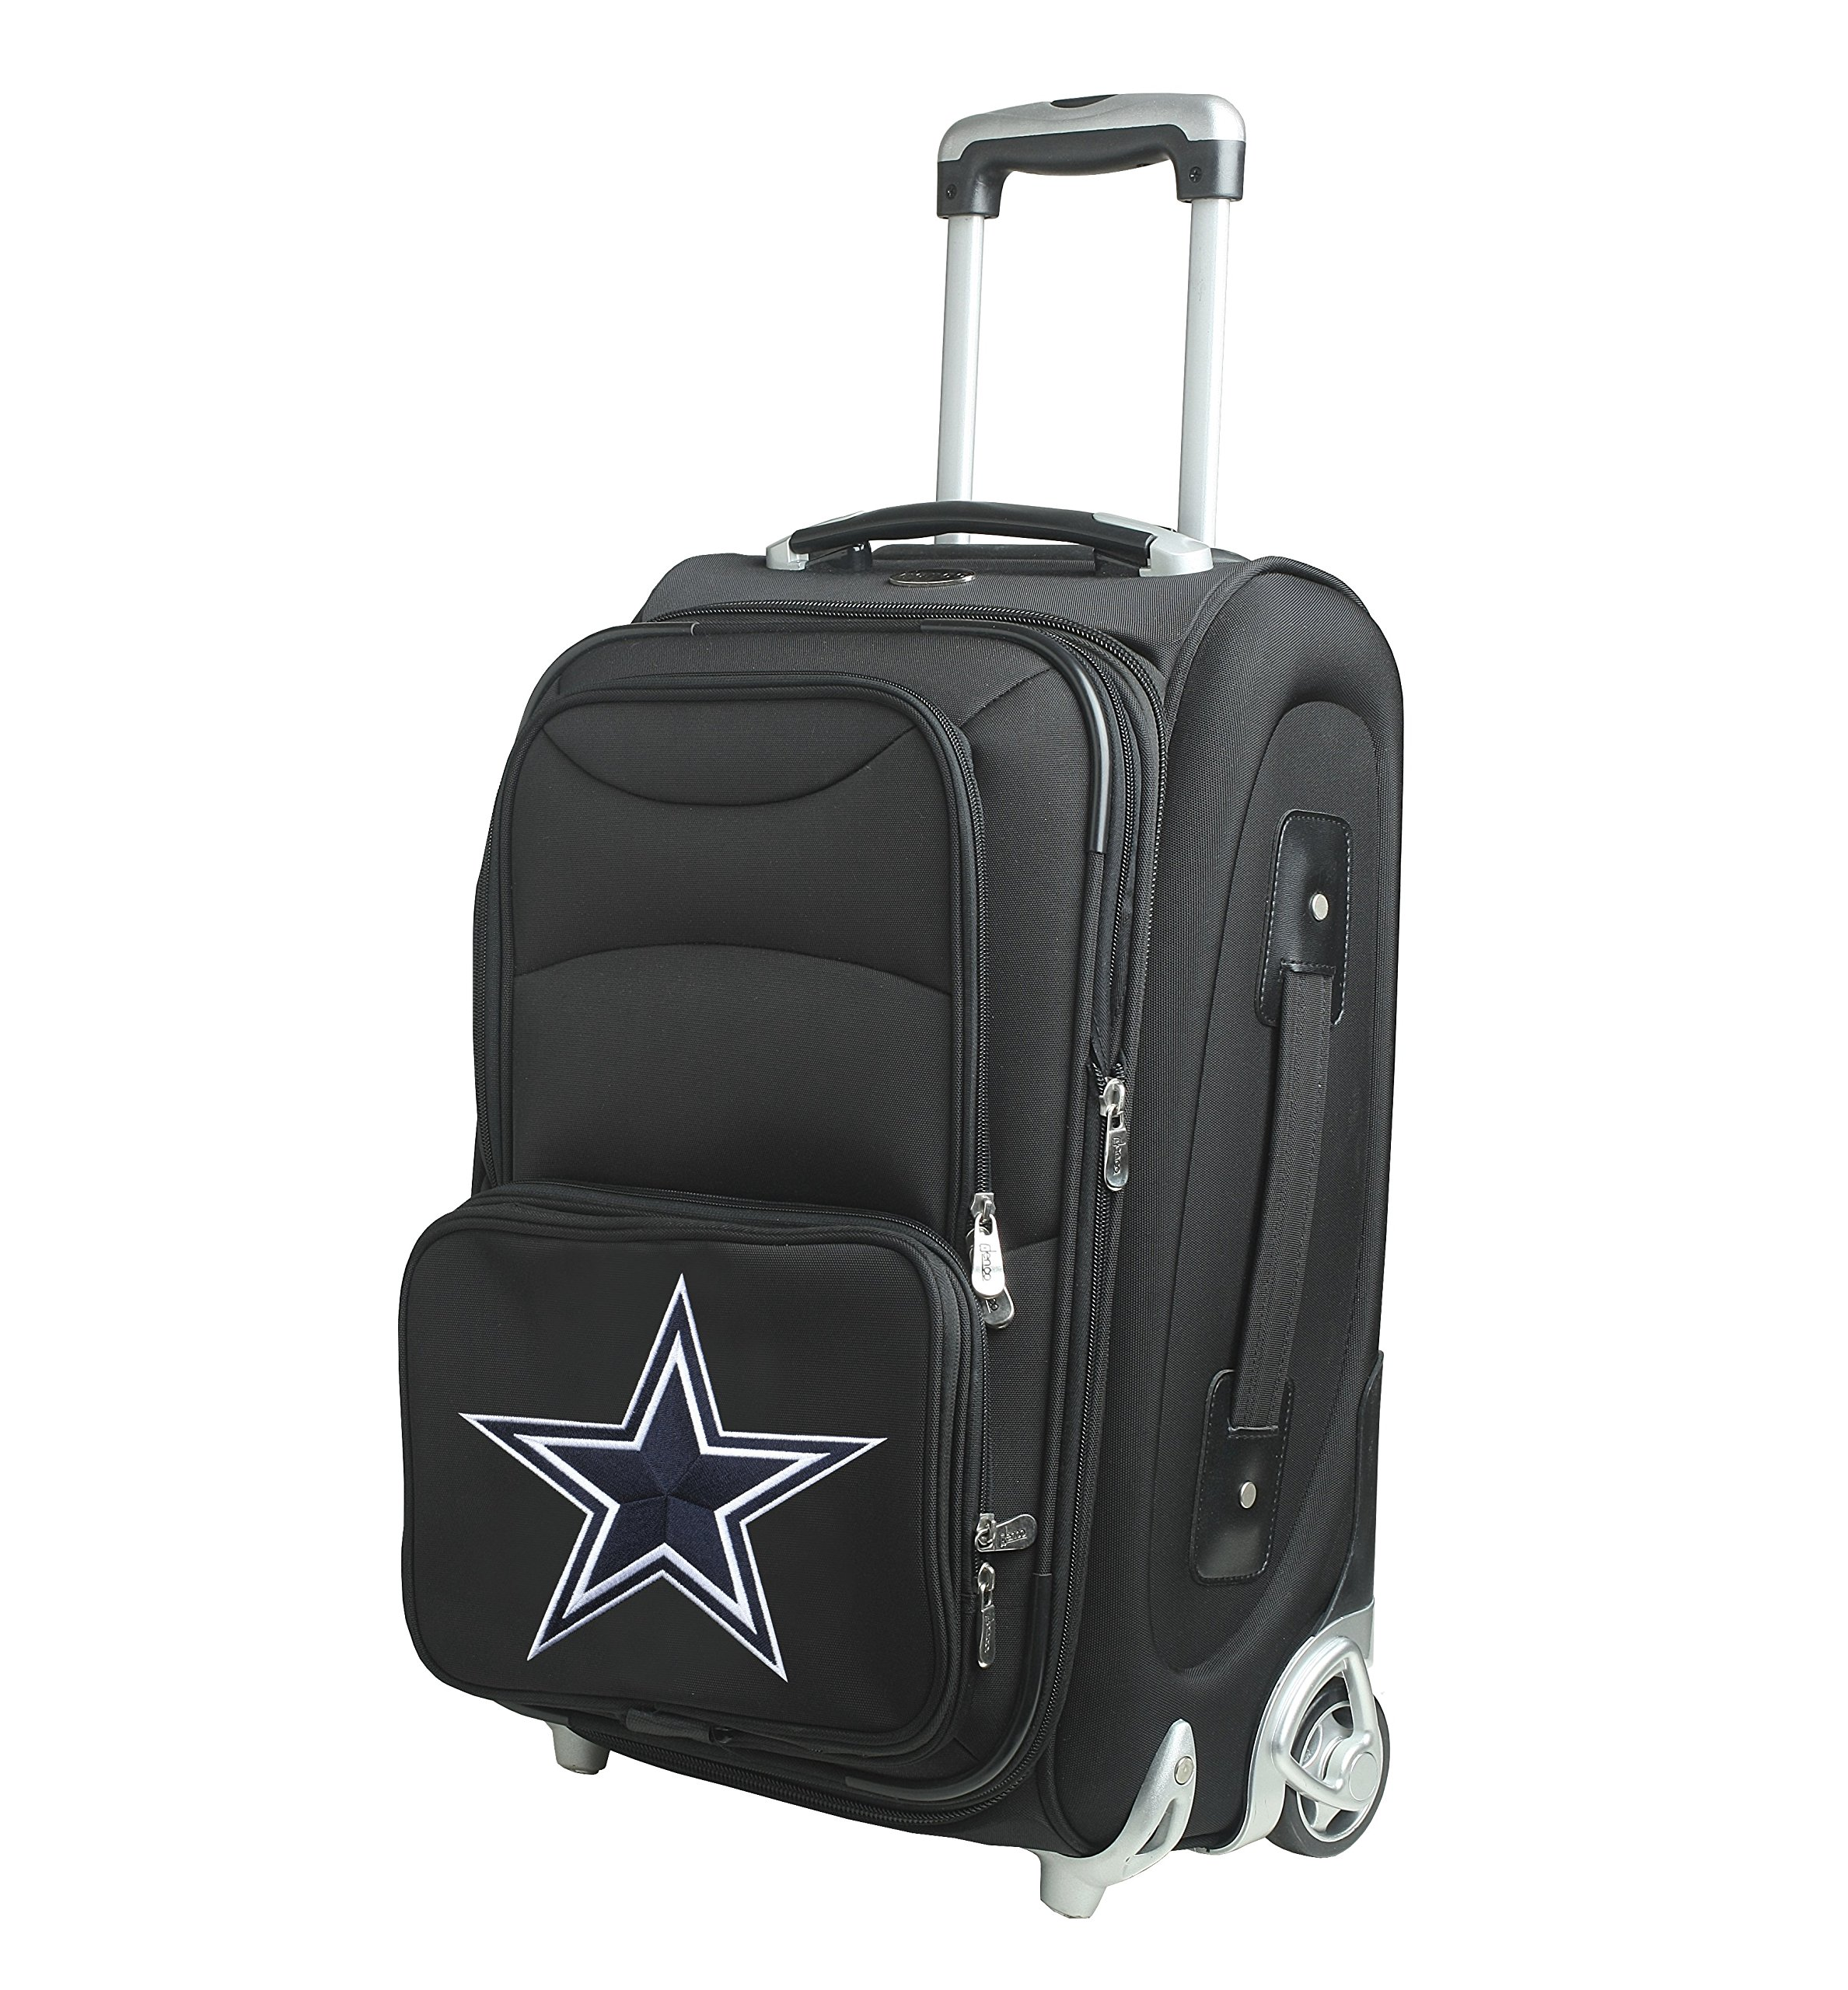 NFL Dallas Cowboys 21-inch Carry-On Luggage by Denco (Image #2)